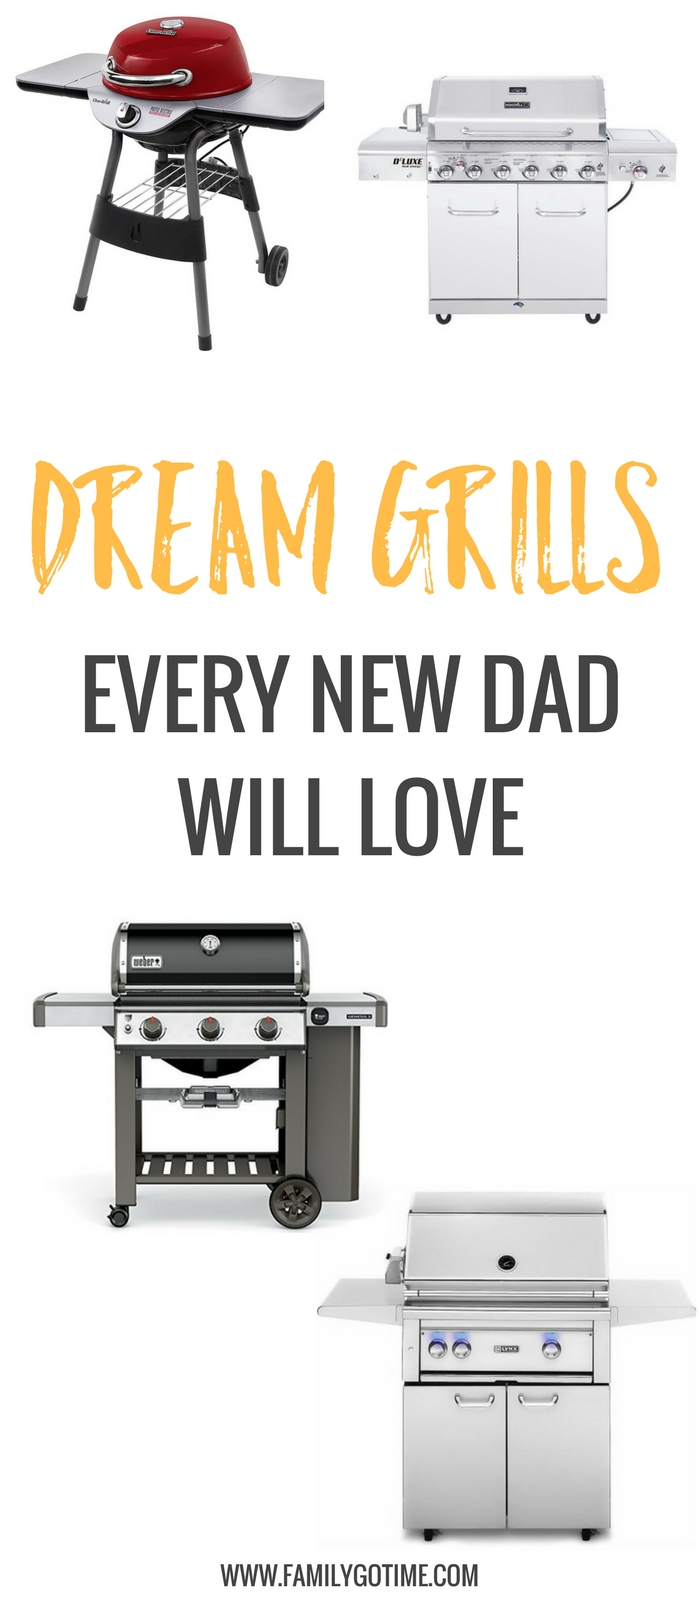 Family gatherings and backyard parties are just around the corner. What better way to welcome them to fatherhood than with the best grills of their dreams?